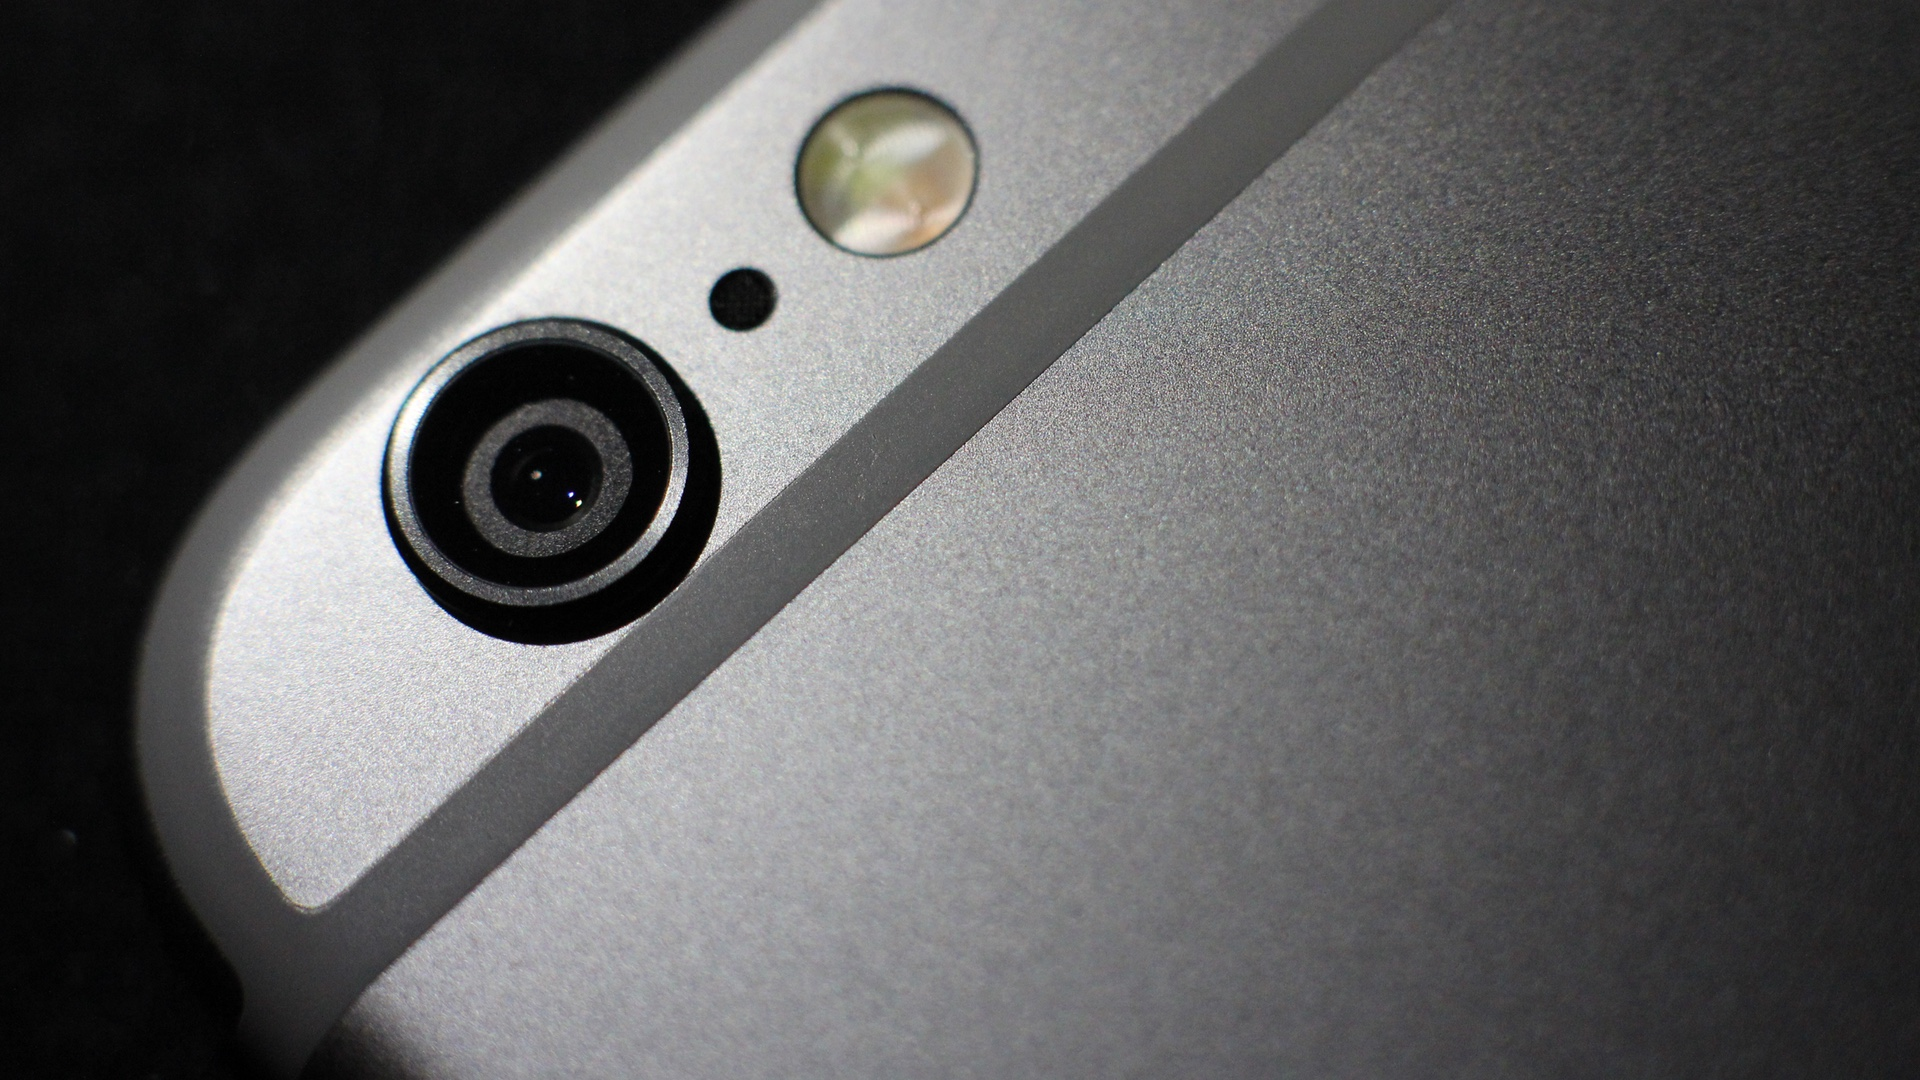 iPhone 6 Protruding Camera Lens